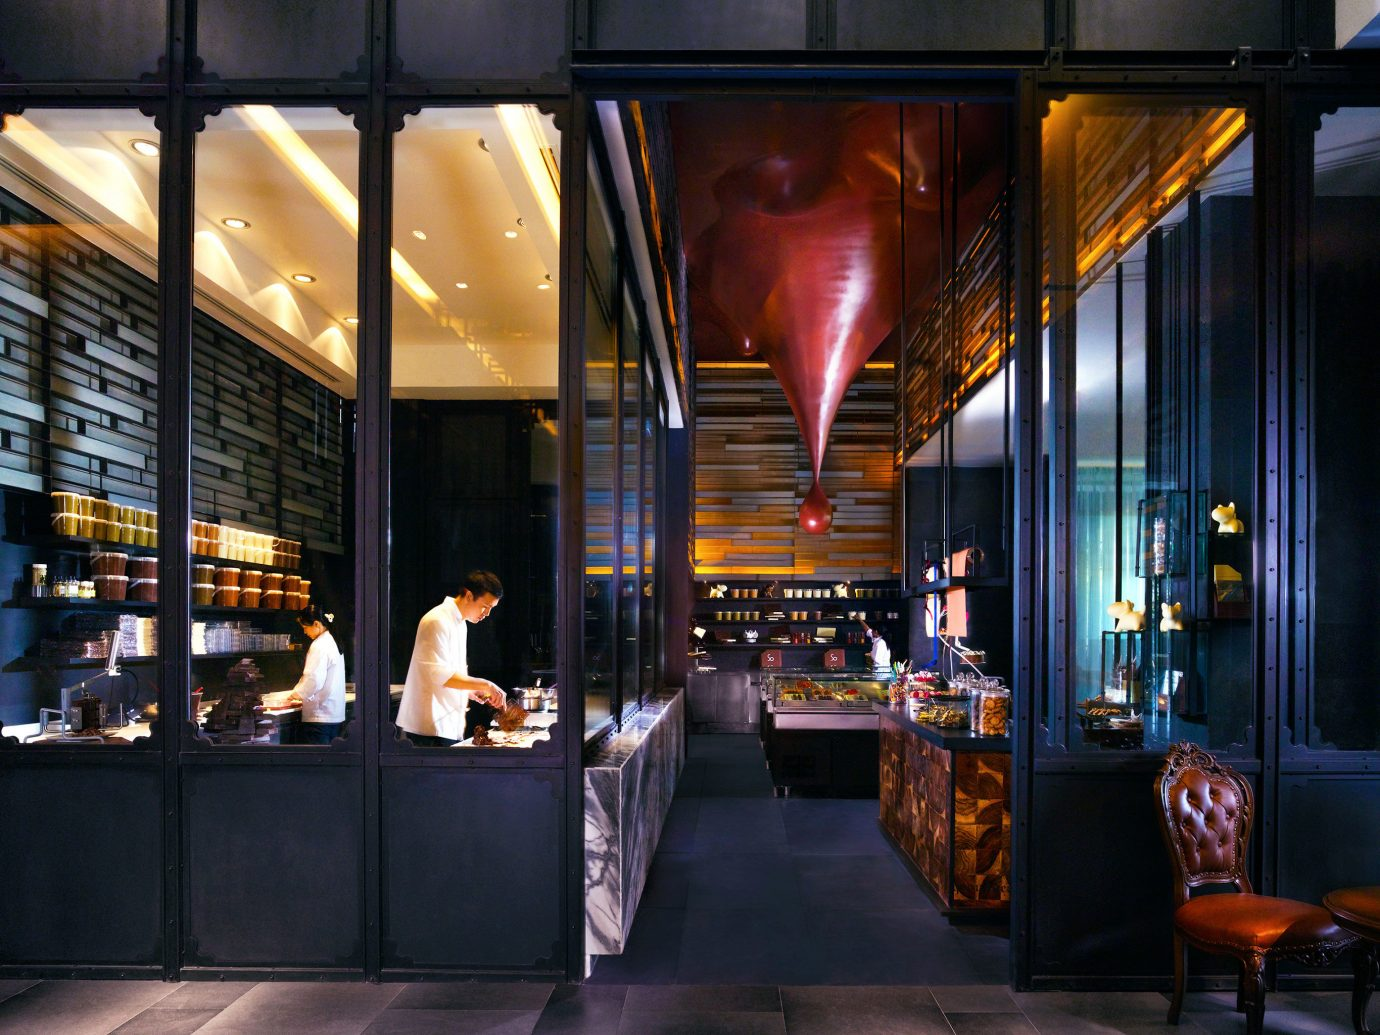 Architecture City Design Dining Eat Hip Hotels Luxury Scenic views window restaurant Bar interior design meal